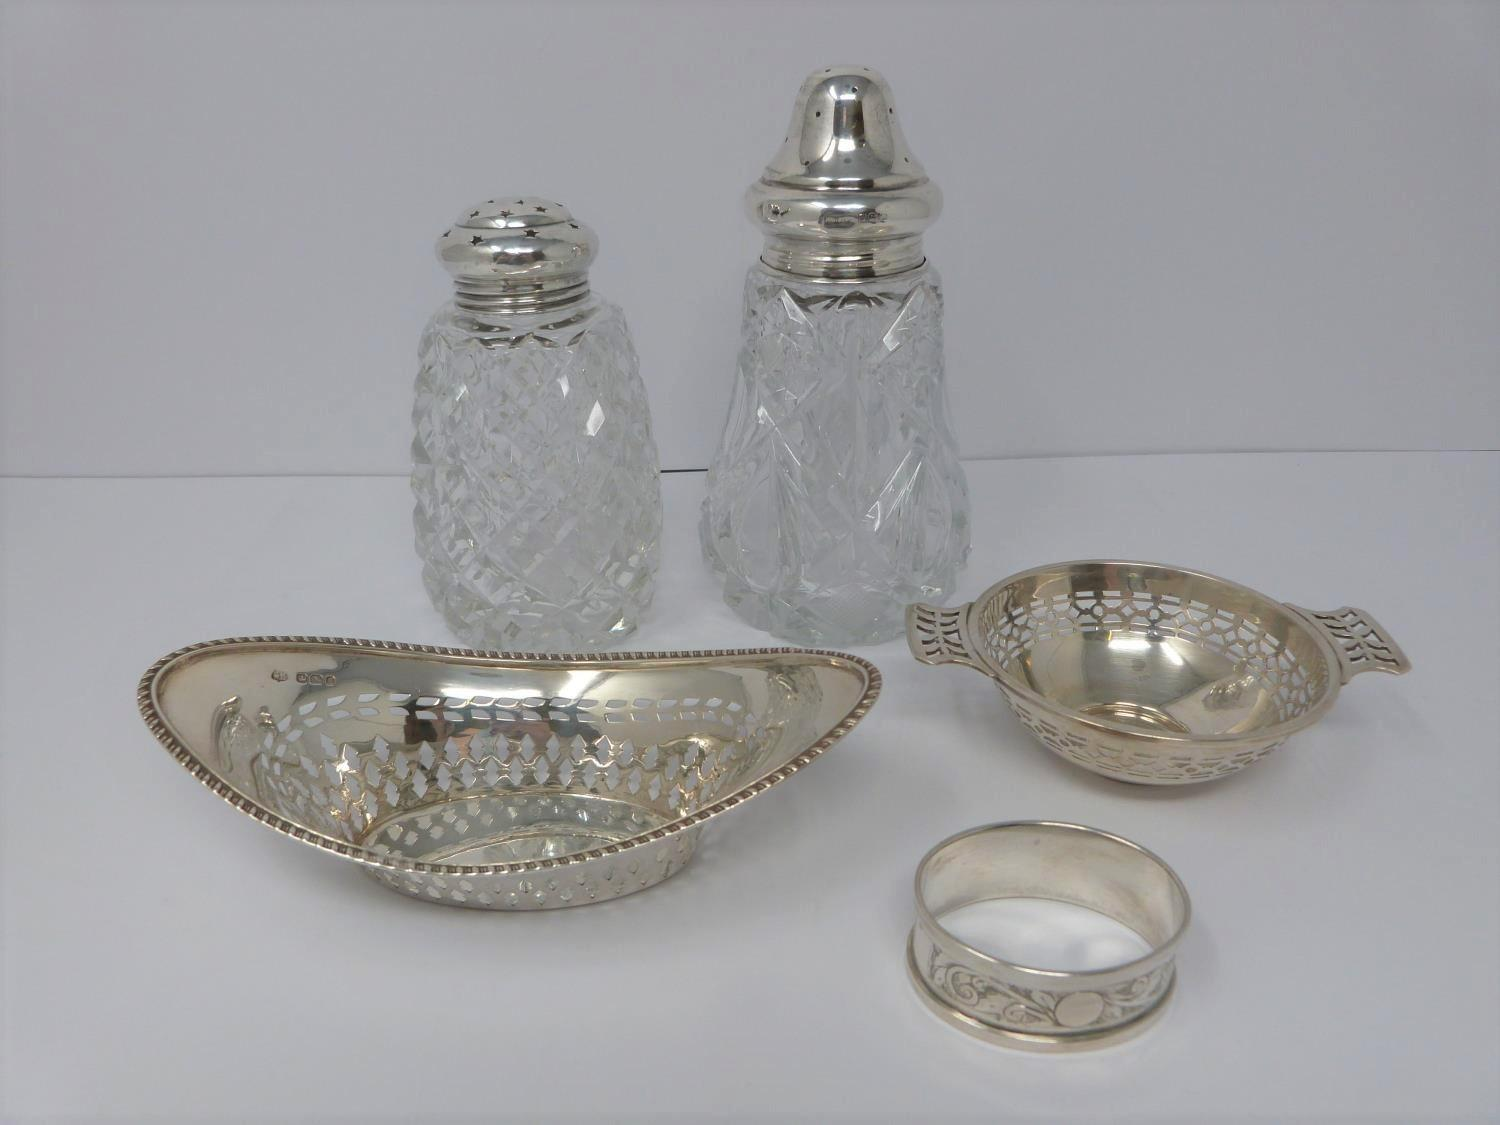 Two silver and cut glass sugar sifters, two silver pierced dishes and a silver engraved napkin ring,